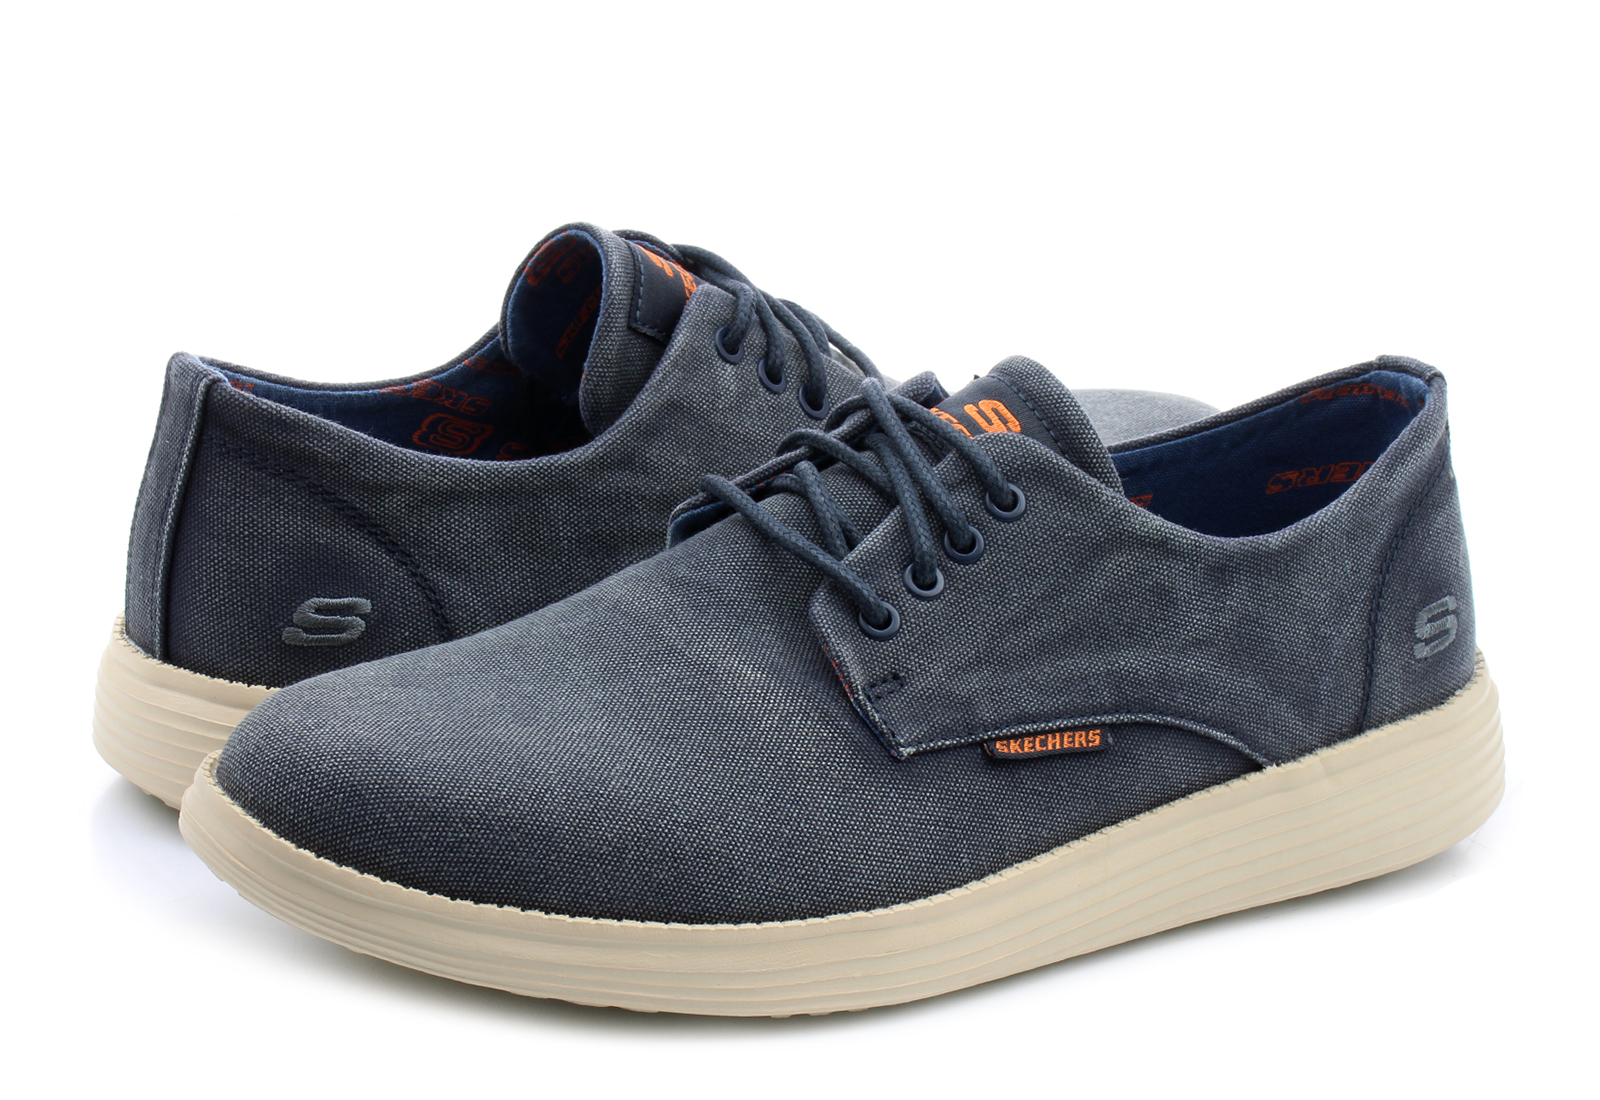 Mens Shoes Robert